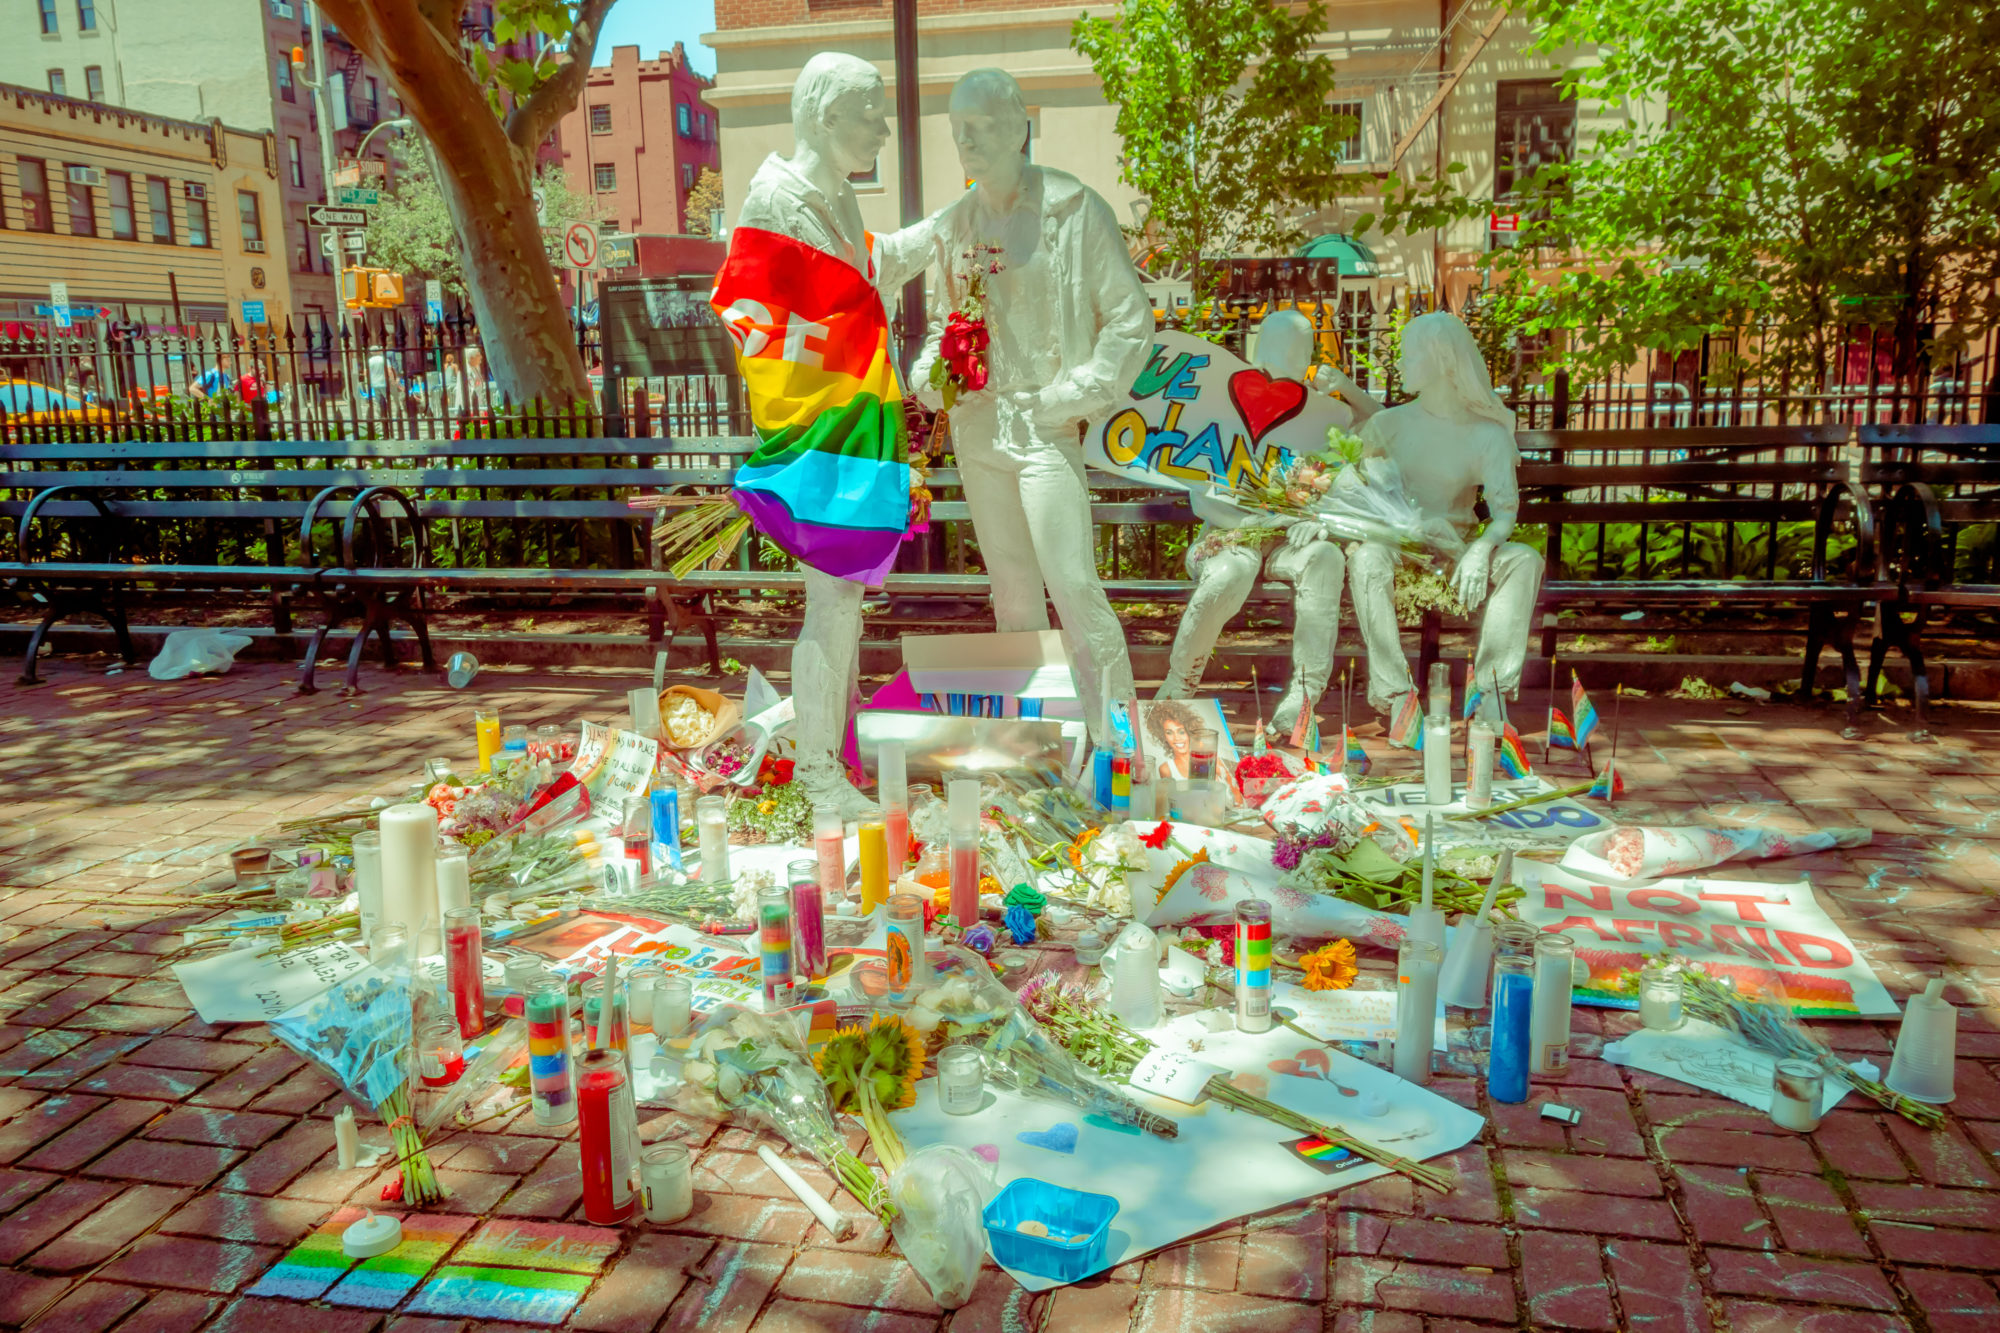 An Orlando memorial near Pulse to the 49 people killed and 53 wounded in Omar Mateen's 2016 attack. Photo © Pablo Hidalgo | Dreamstime.com